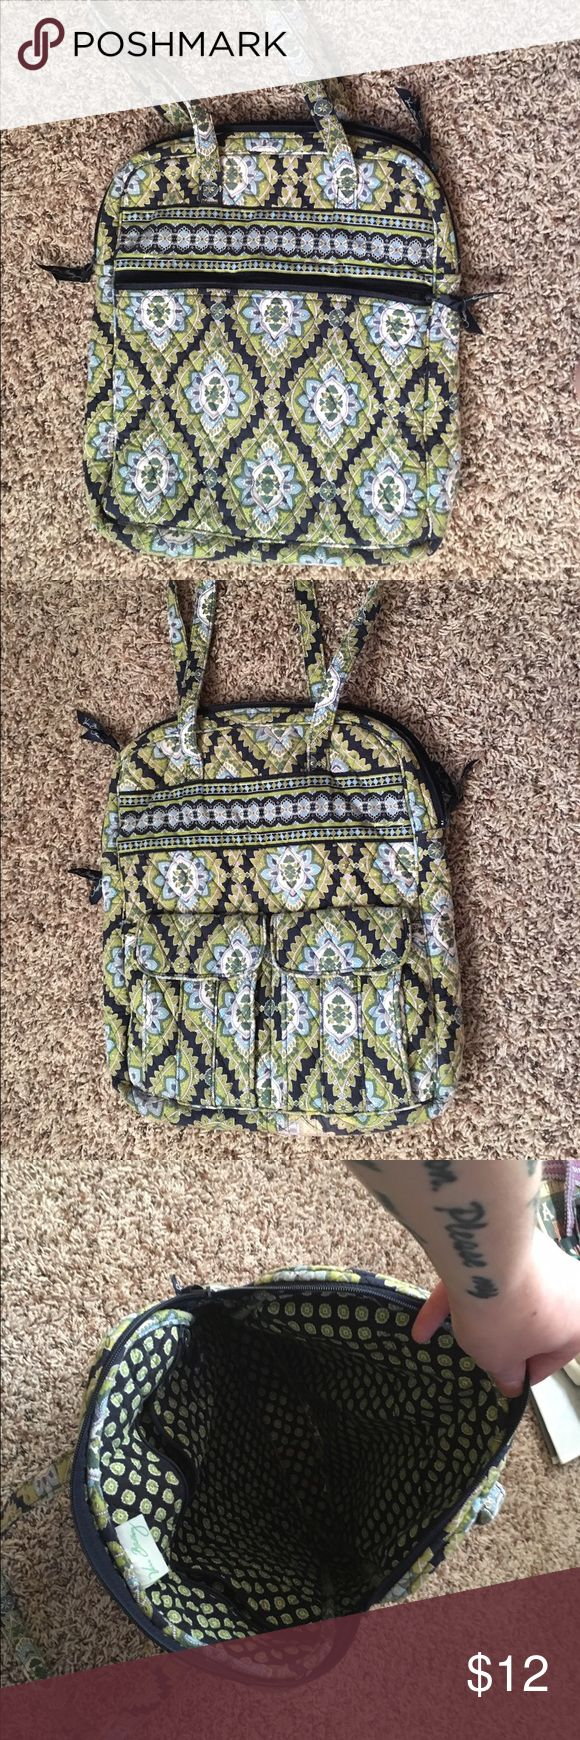 Vera Bradley tote bag Medium sized Vera Bradley tote bag. Has been used but still in great condition. Comes from smoke free/pet free home! Vera Bradley Bags Totes